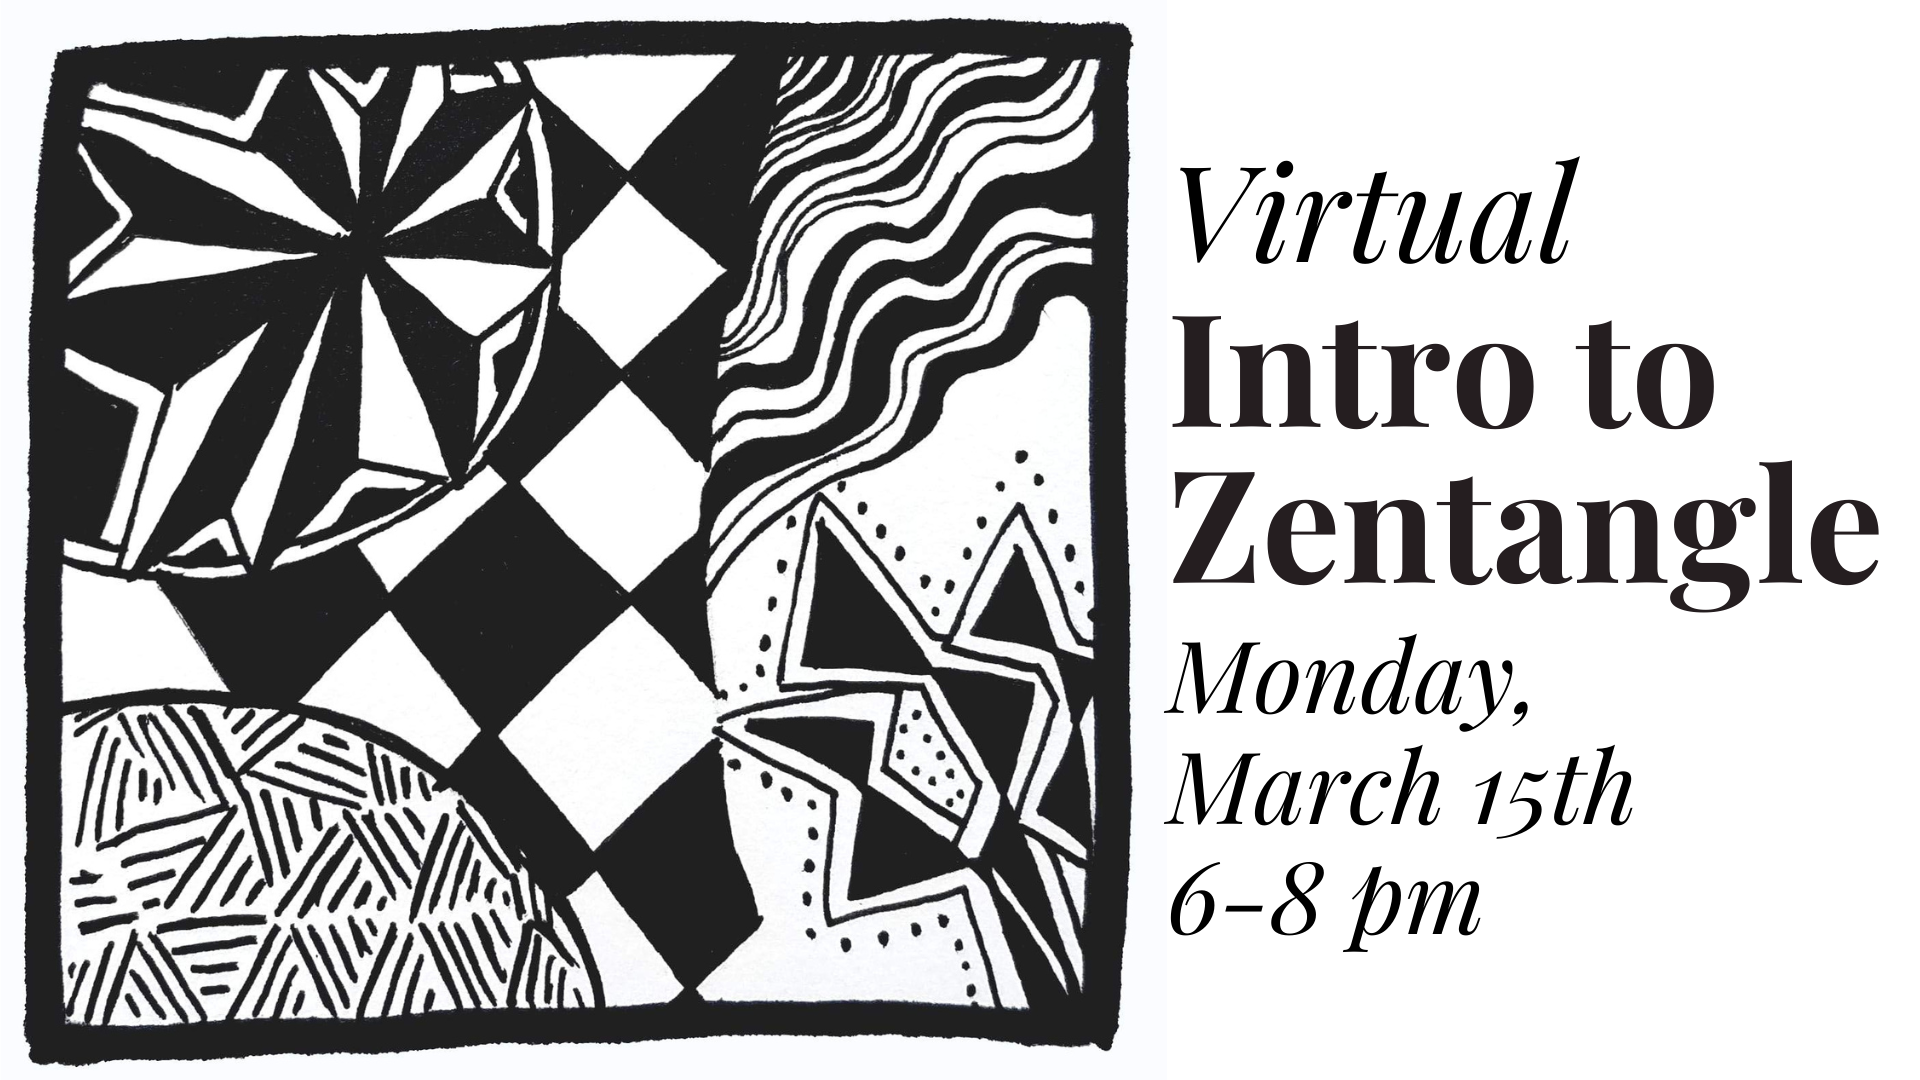 Virtual Intro to Zentangle. Monday, March 15th, 6-8 pm. Image of a black and white square with repeating doodle designs inside.